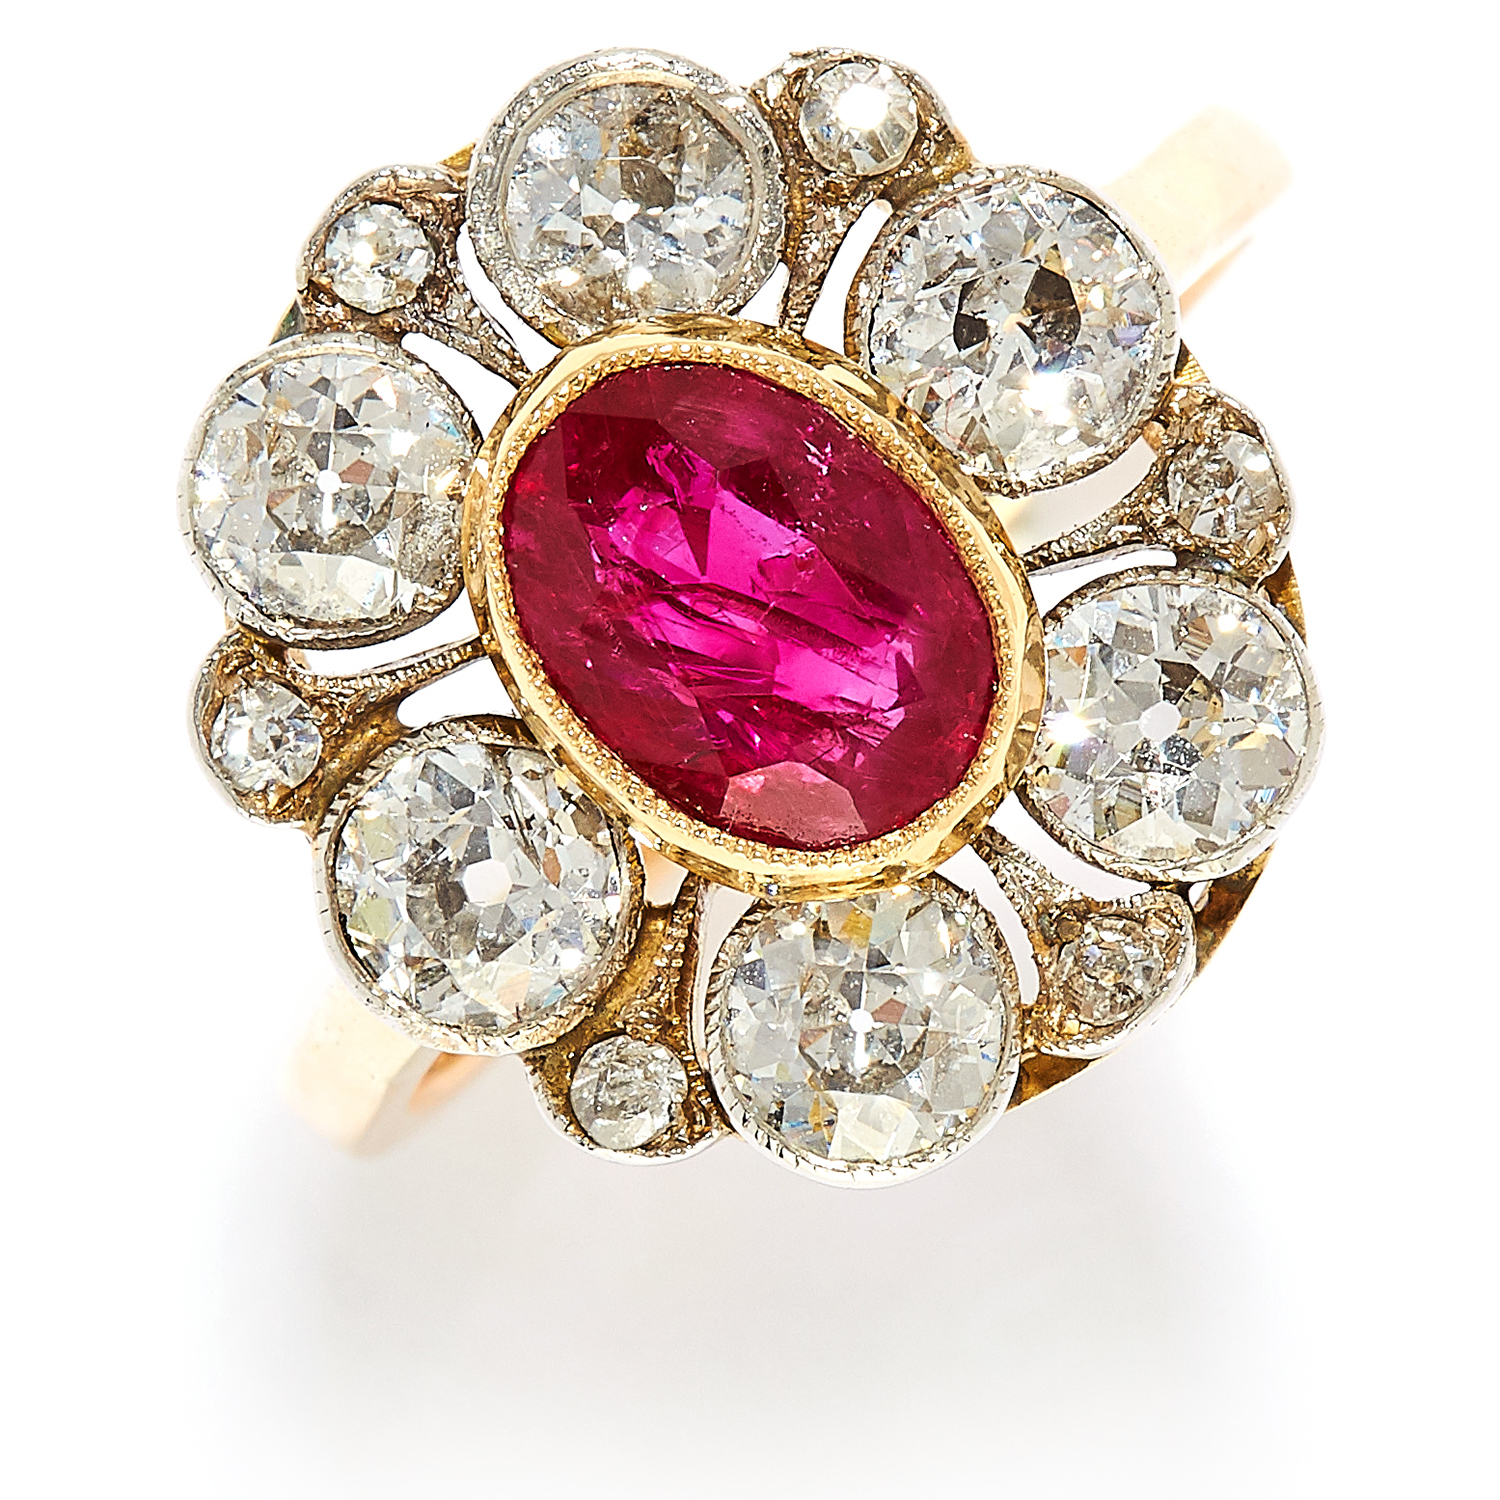 Los 4 - 1.40 CARAT BURMA NO HEAT RUBY AND DIAMOND CLUSTER RING in high carat yellow gold, comprising of a